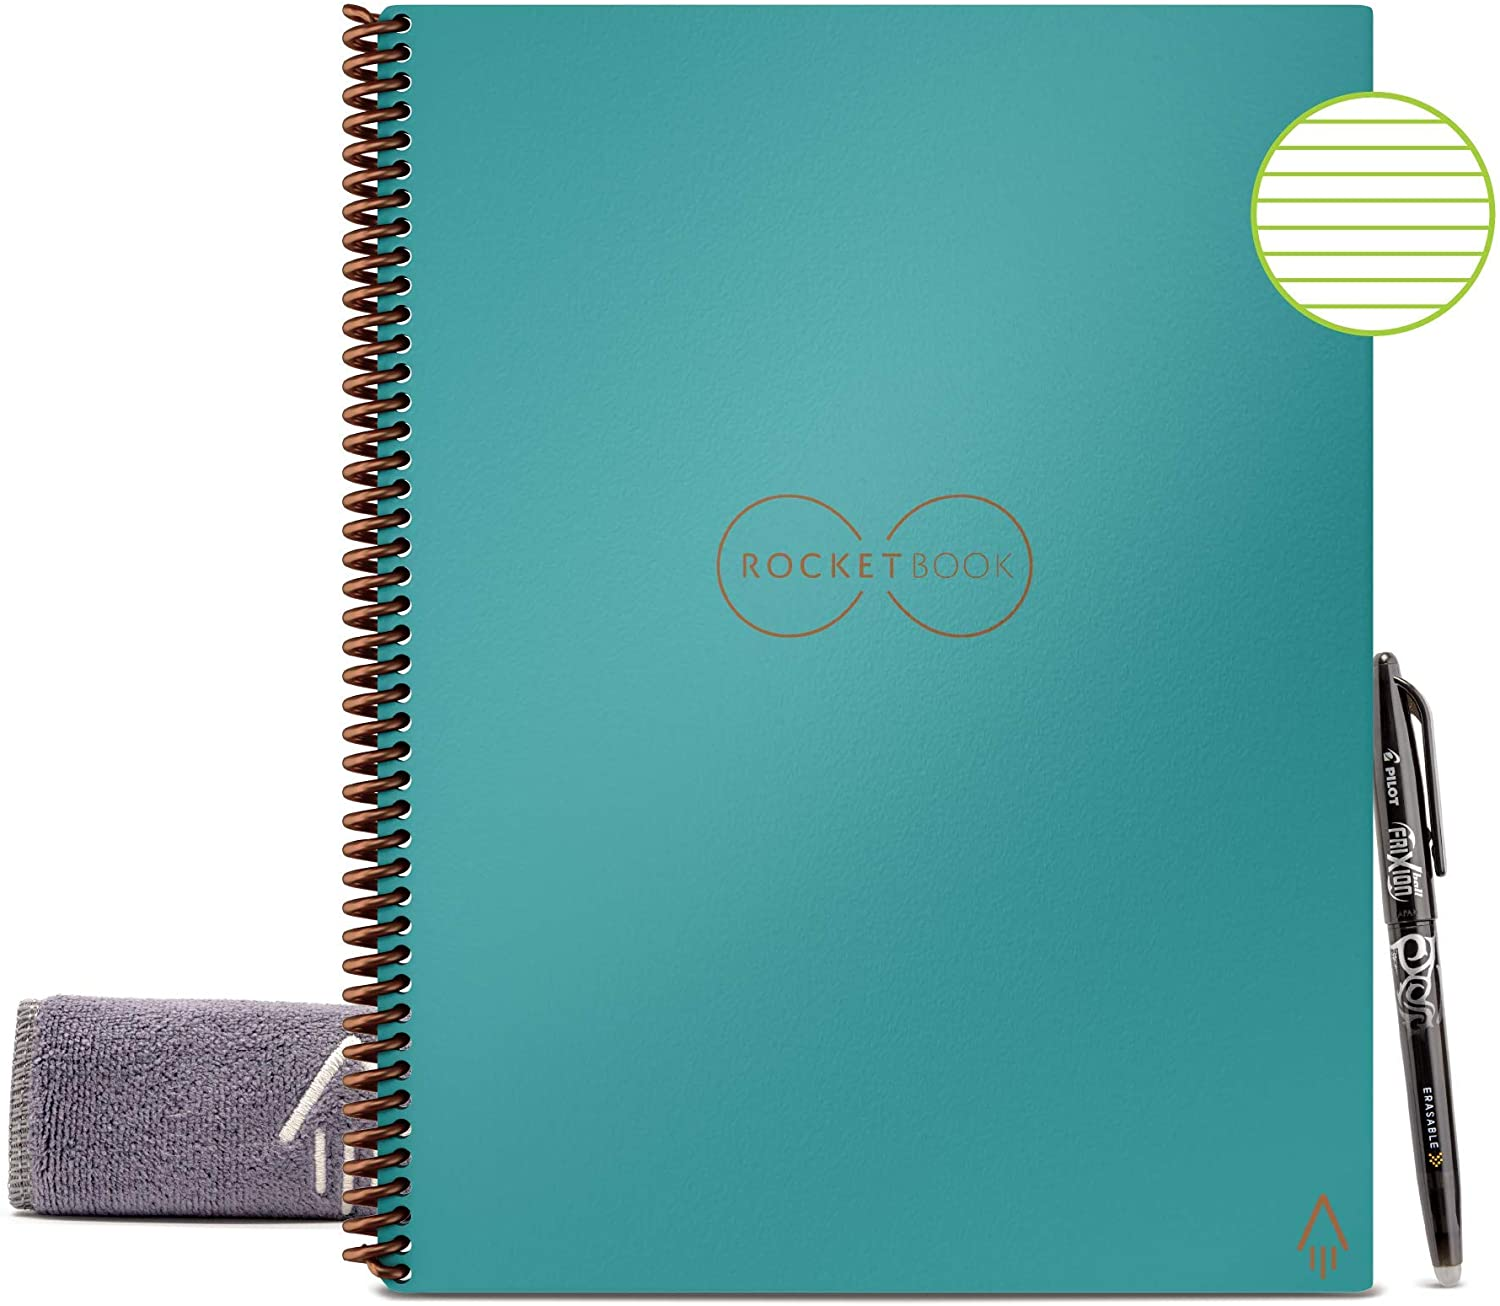 Can You Time Smart Notebook